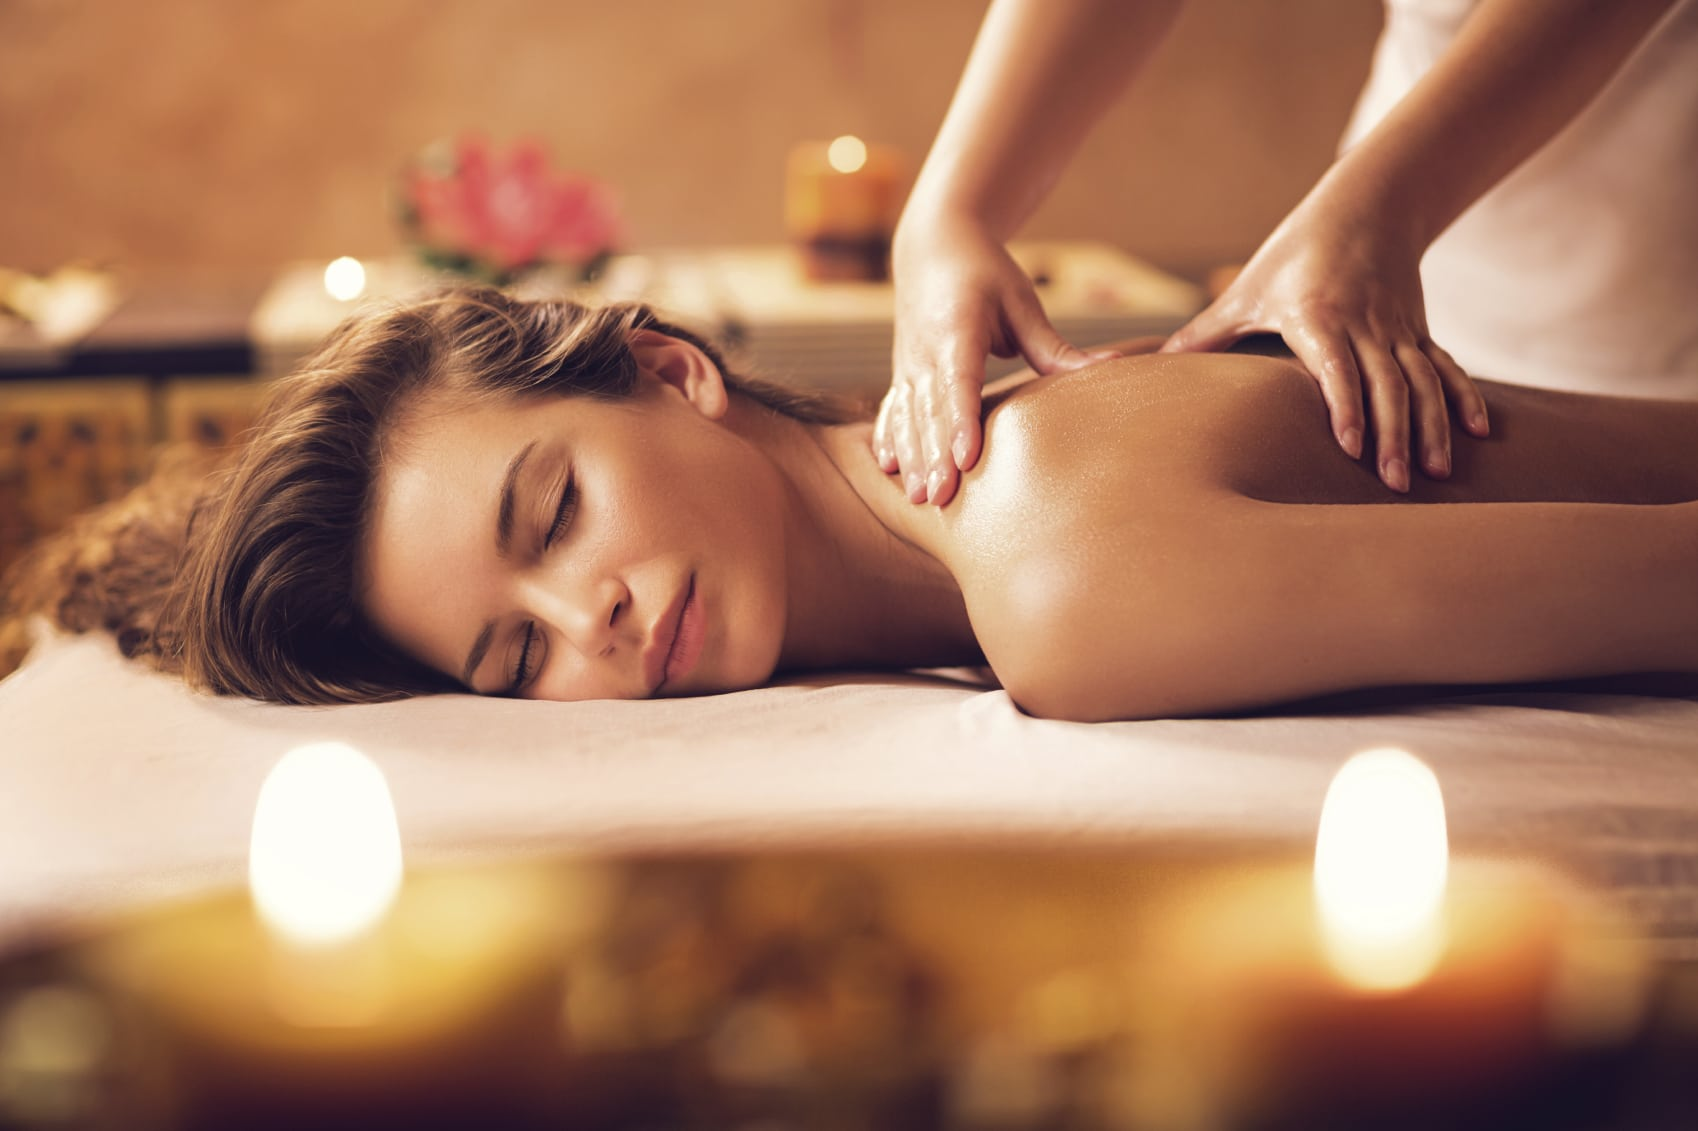 https://www.atmospherespa.gr/wp-content/uploads/2018/12/Massage-2.jpg